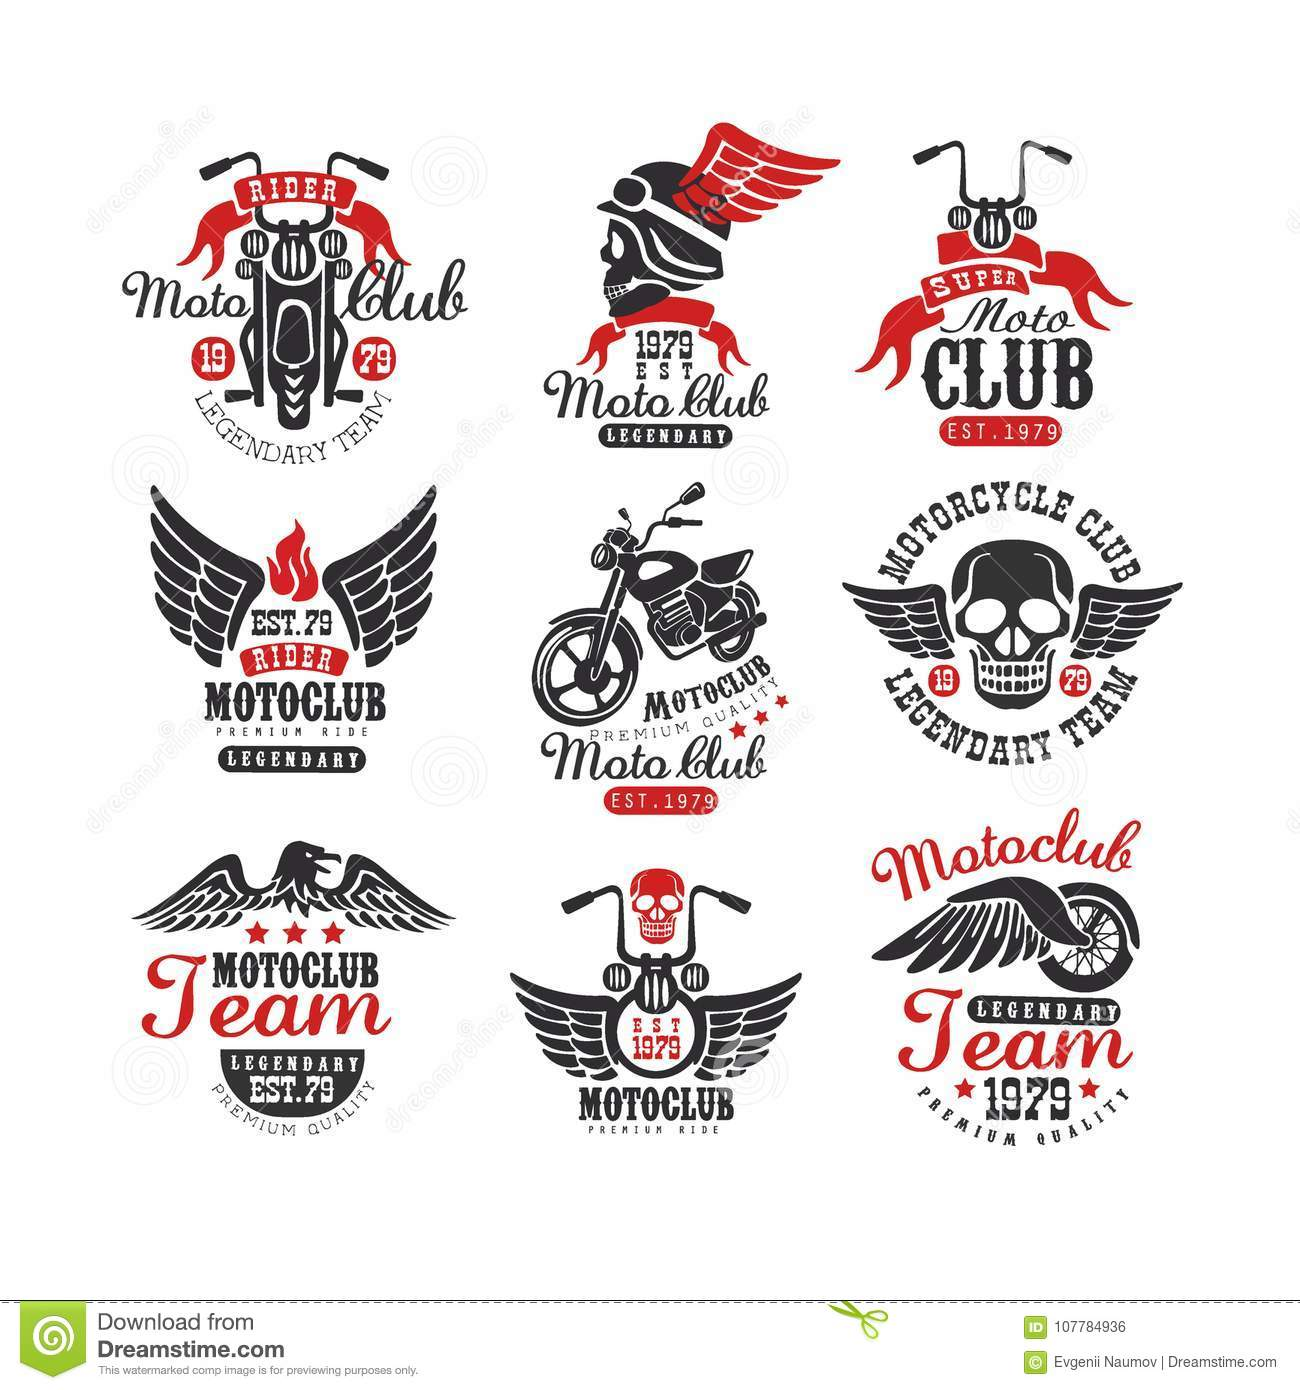 61912fb5d5e Collection of vintage motorcycle club logos